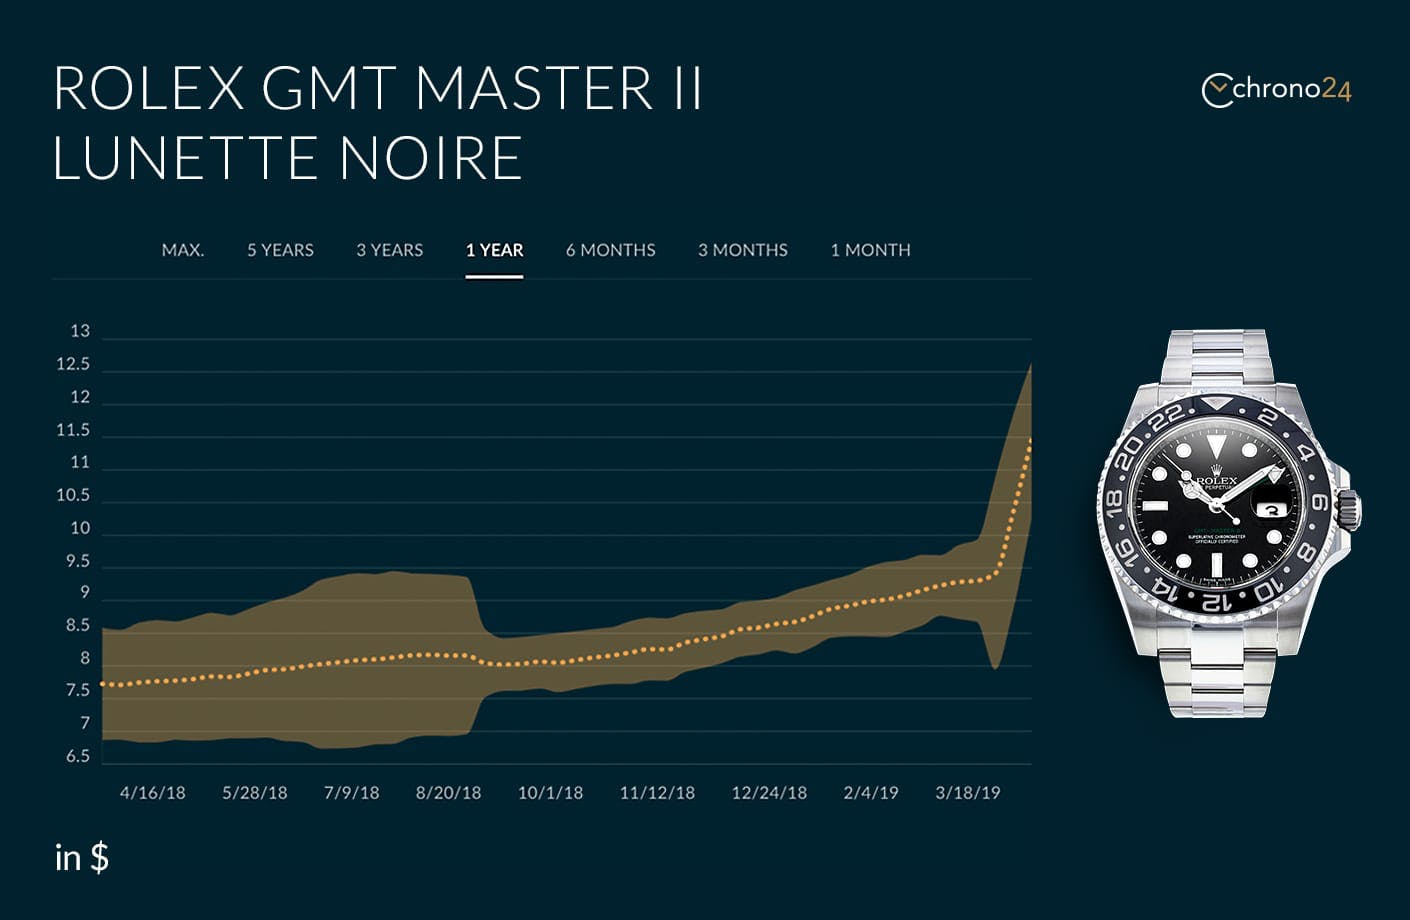 The performance of the GMT-Master II ref. 116710LN over time